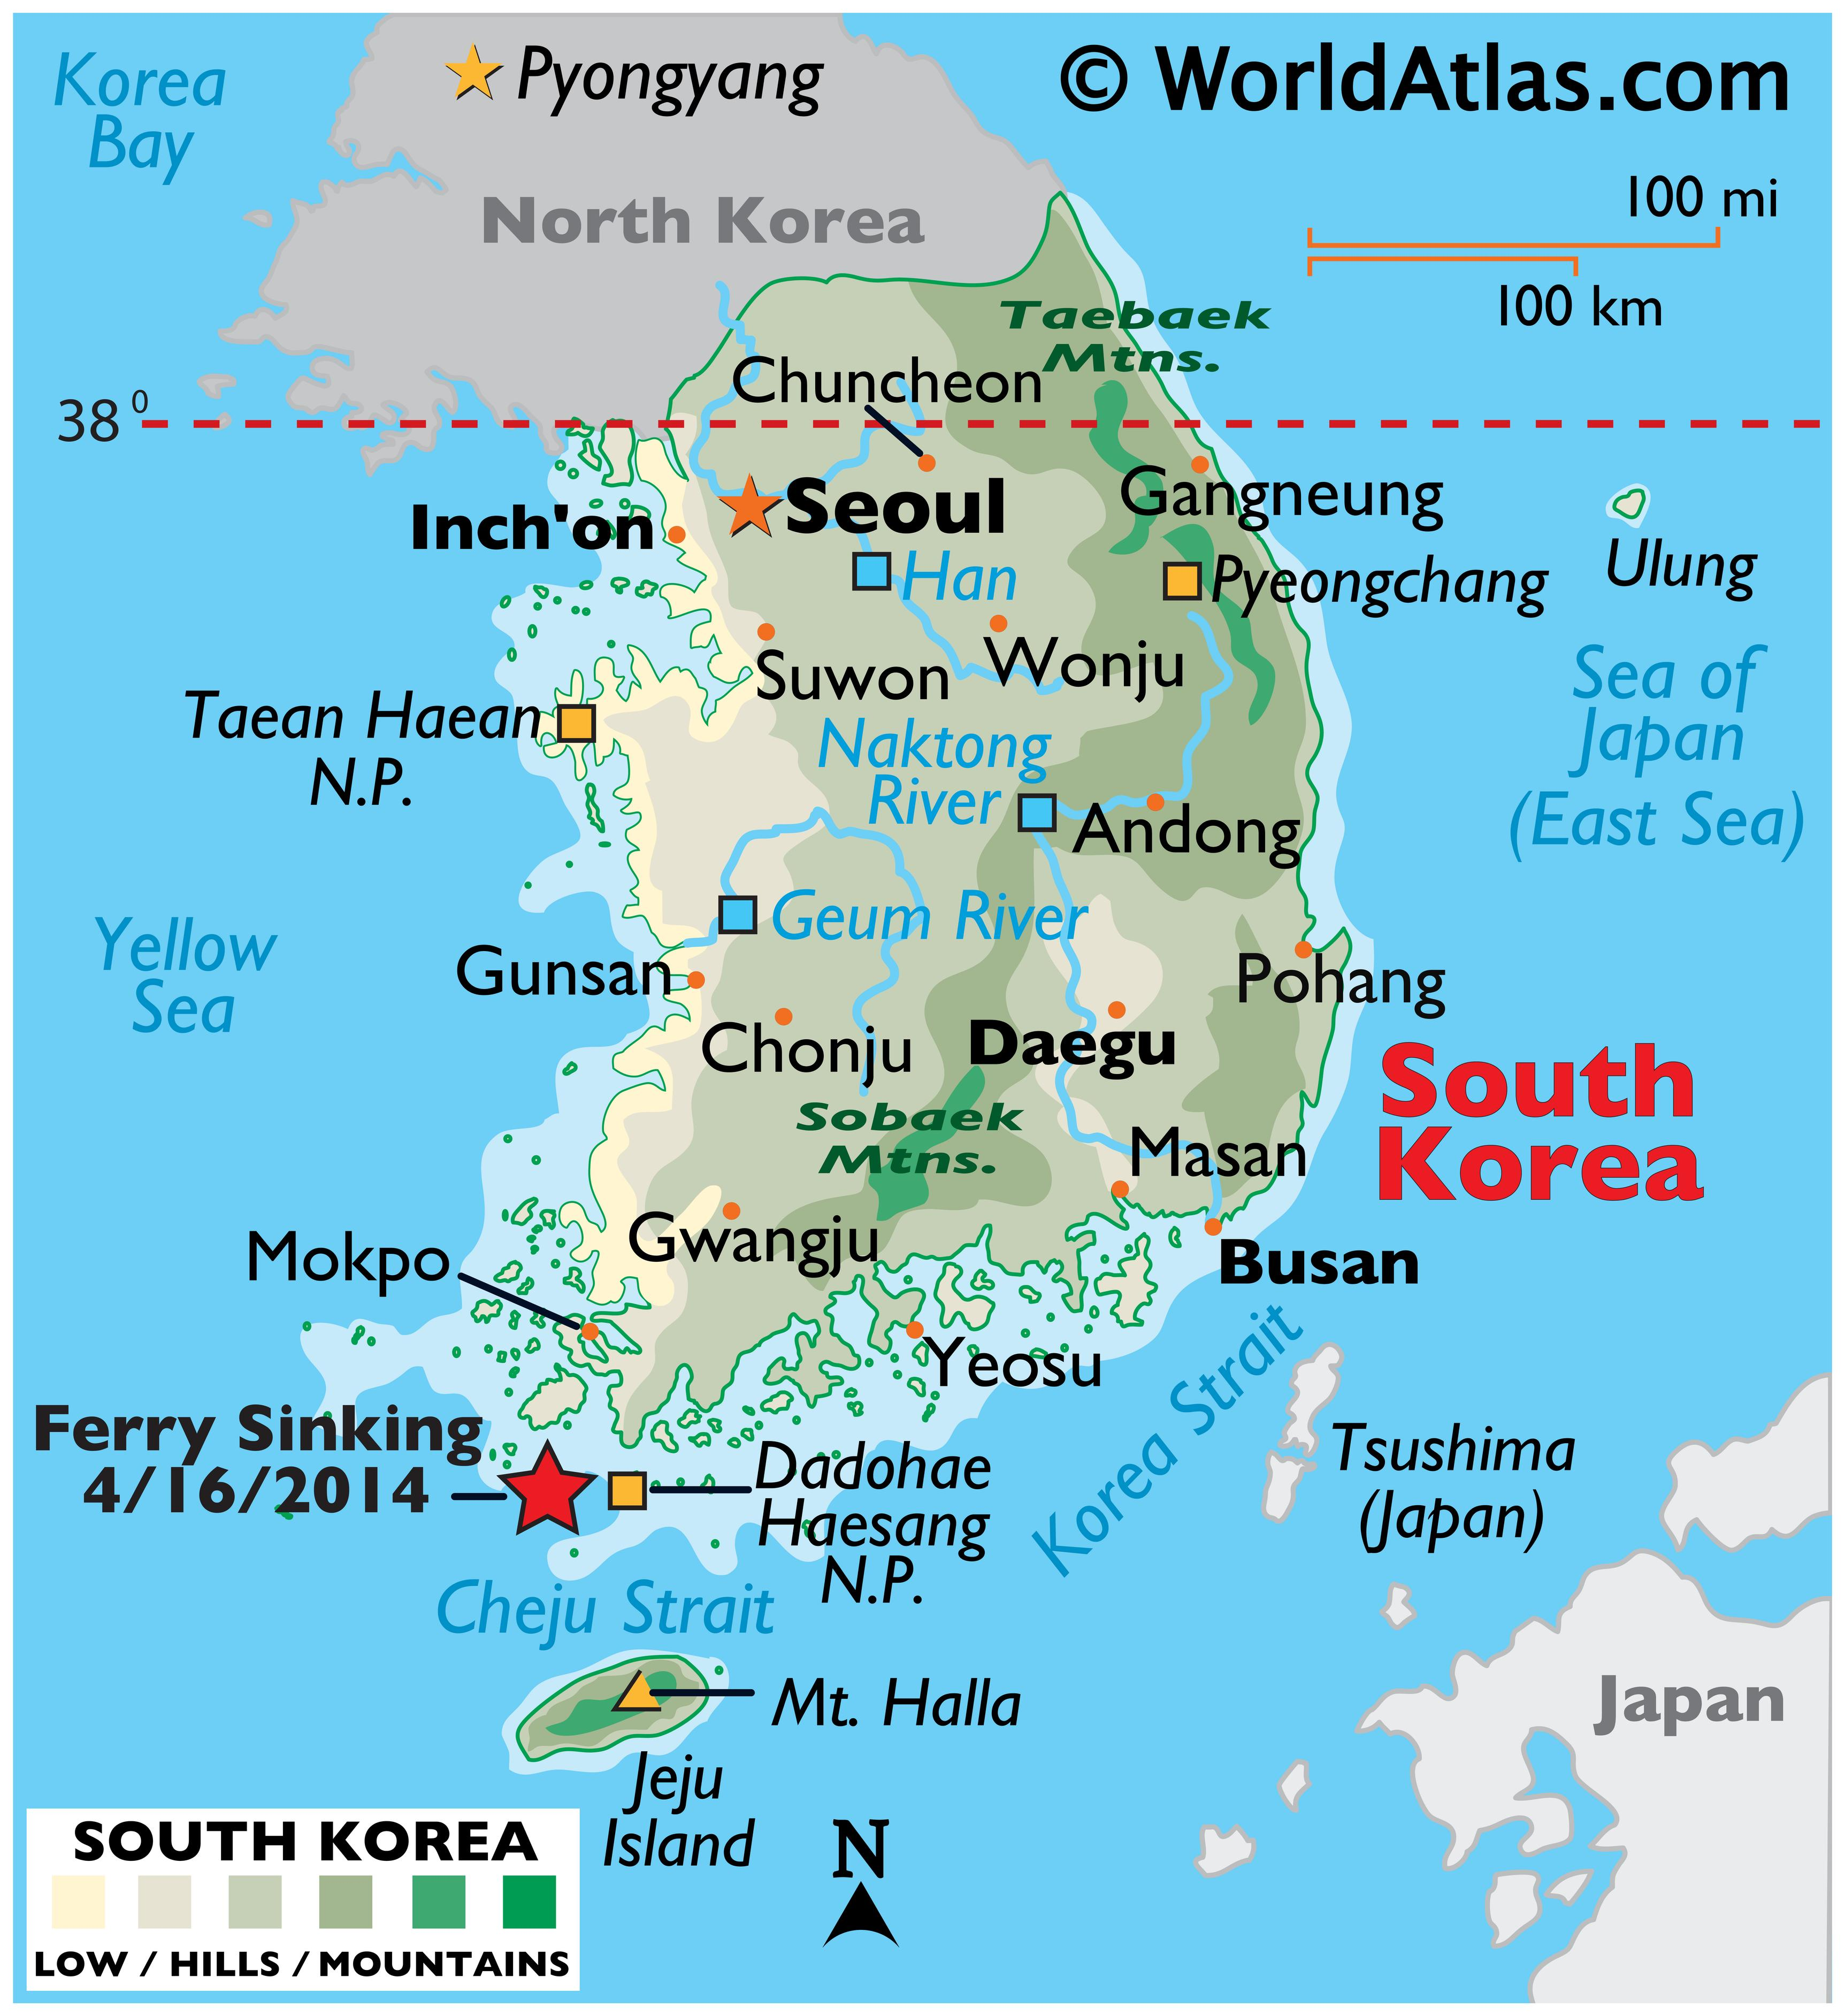 Physical Map of South Korea showing international borders, relief, major mountains, rivers, highest point, important cities and islands.